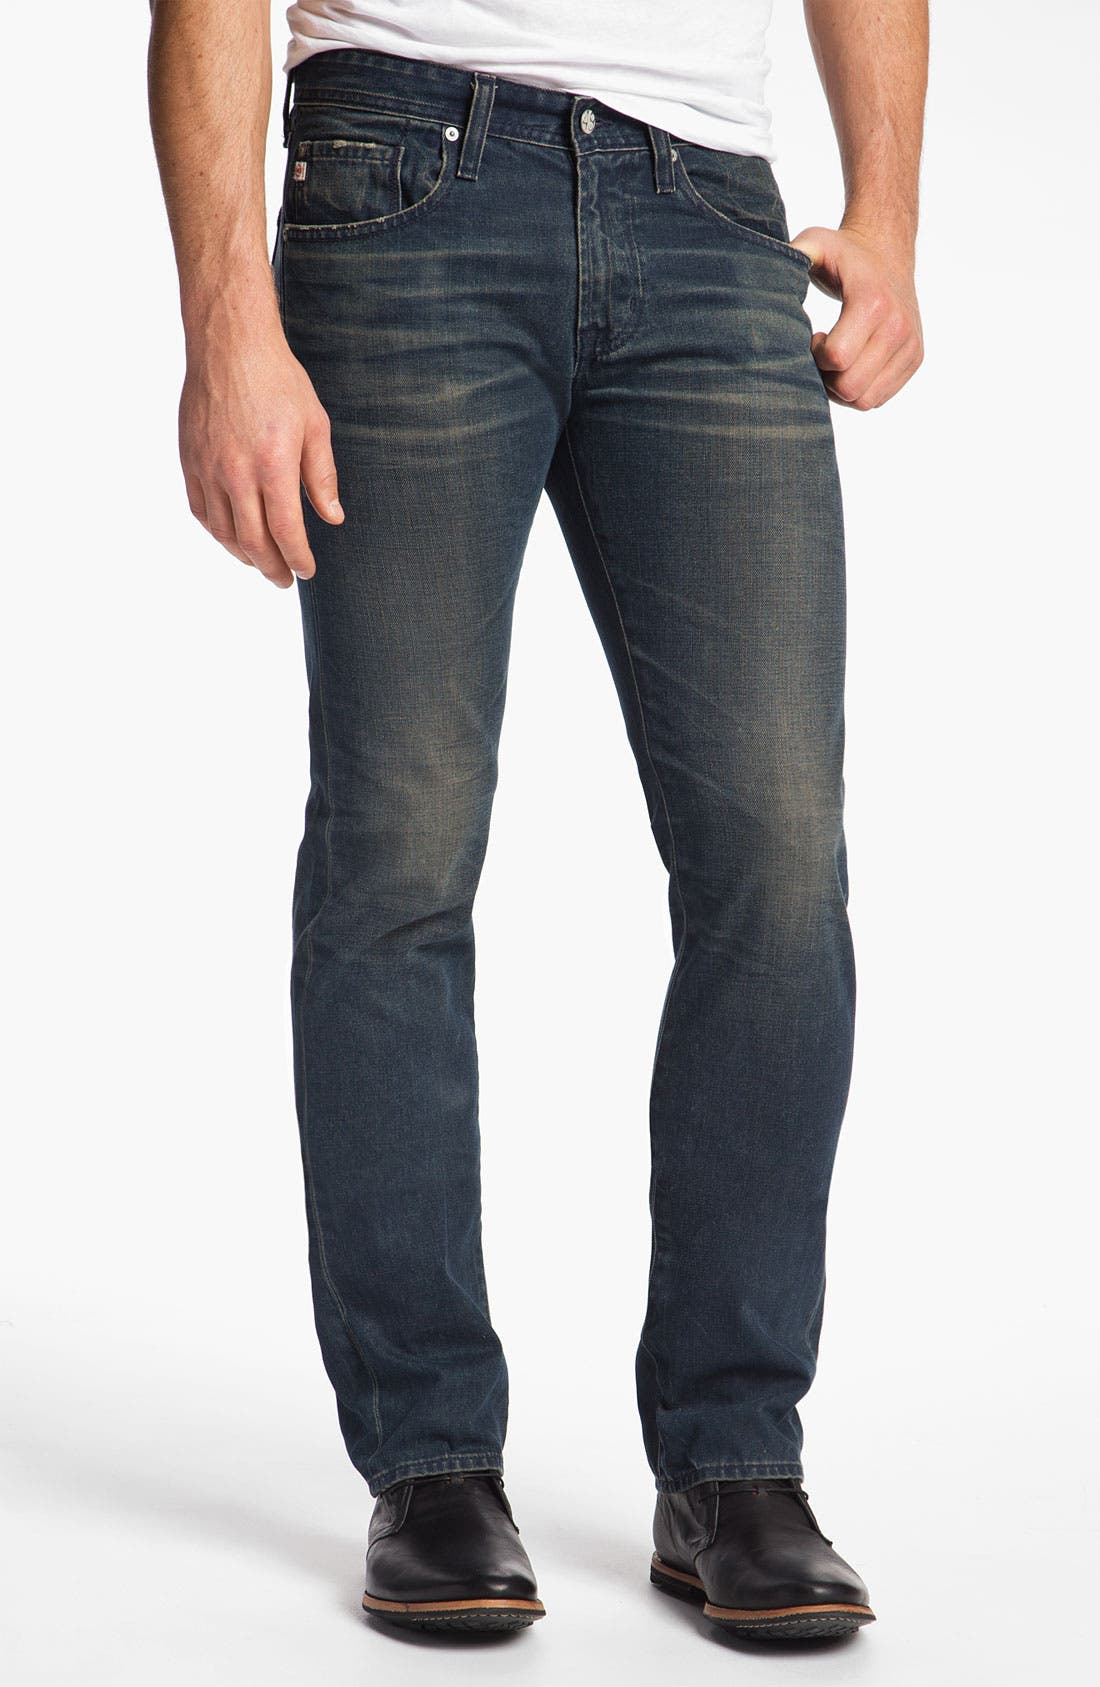 Alternate Image 1 Selected - AG Jeans 'Matchbox' Slim Straight Leg Jeans (7 Year Coated Navy)